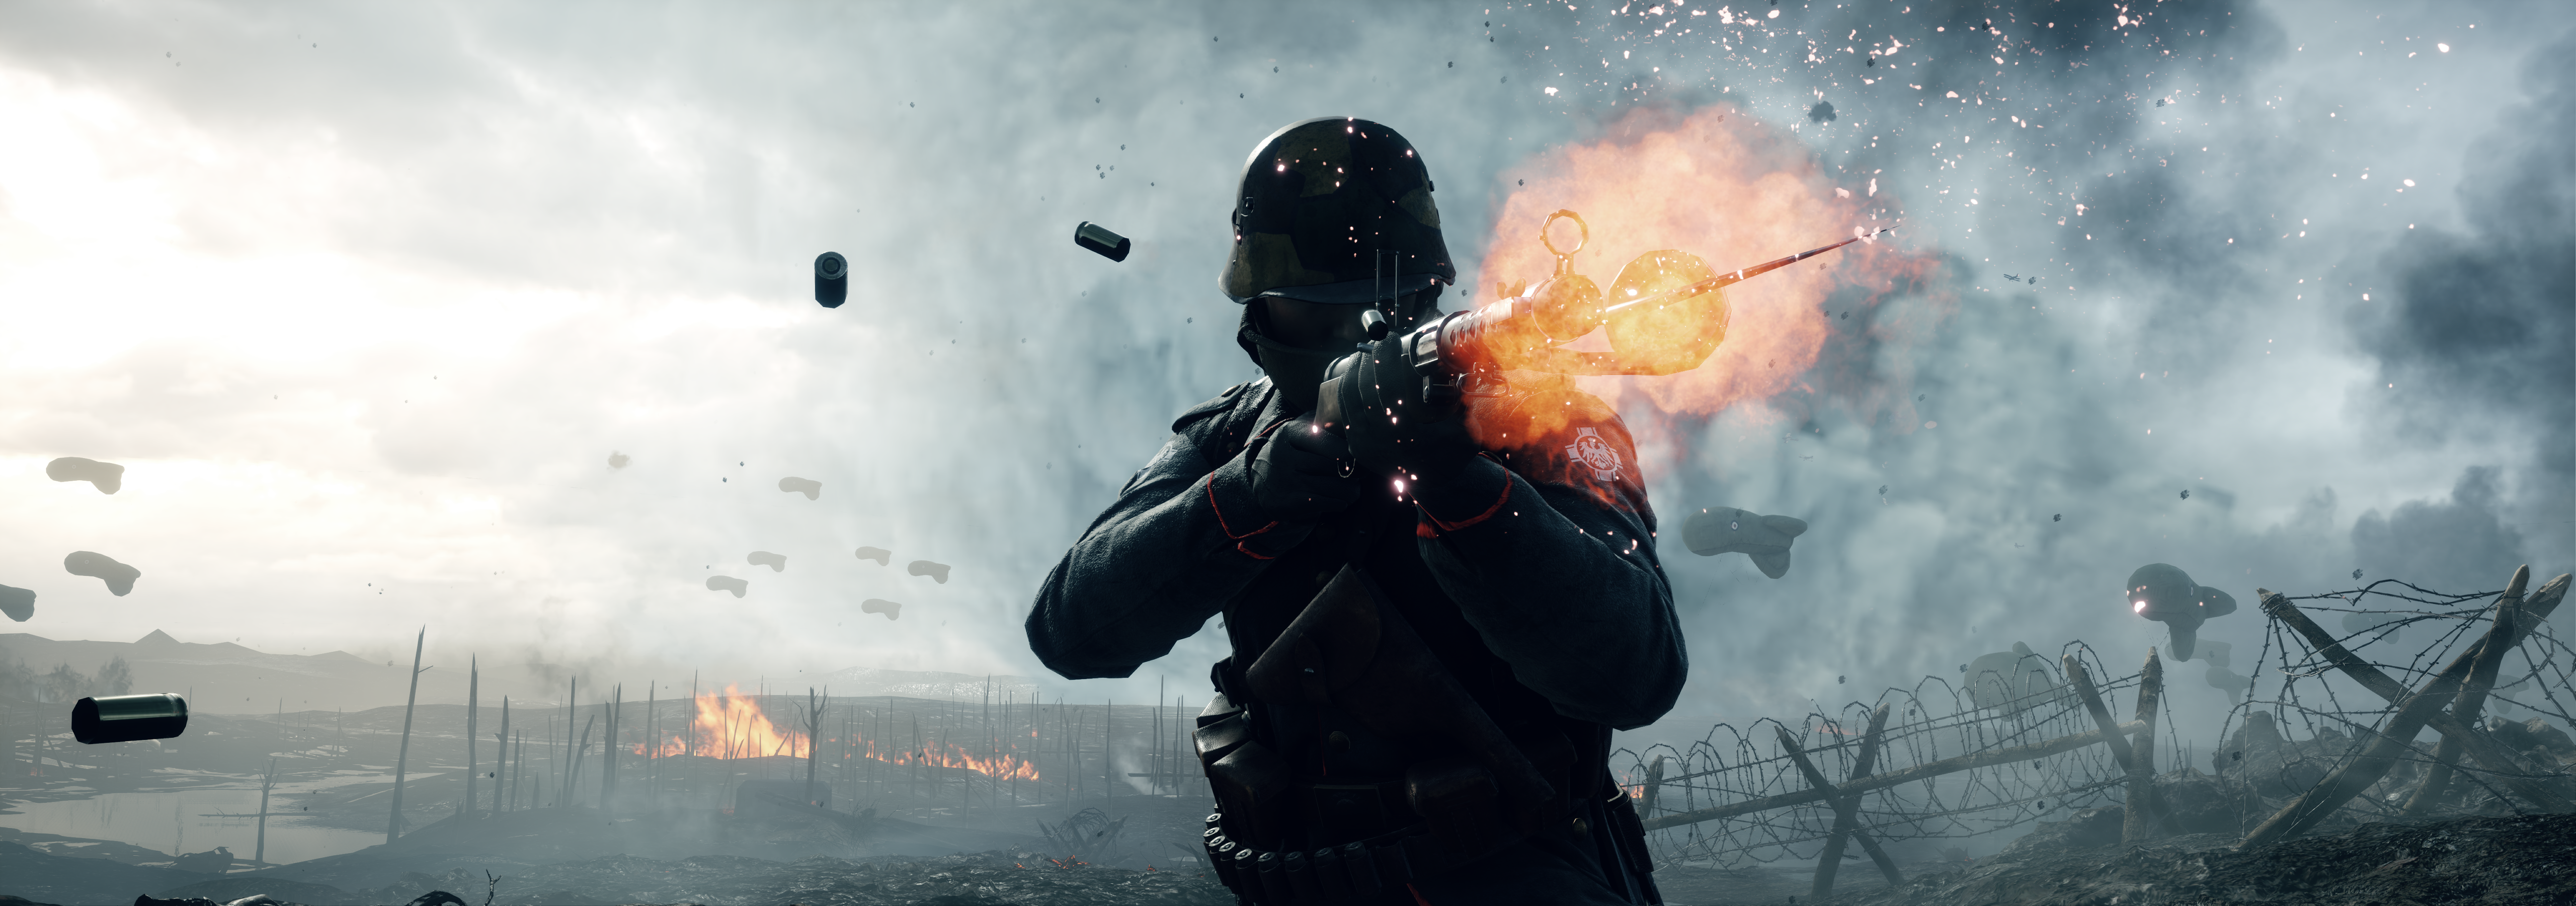 Amazing Wallpaper High Quality Gaming - Battlefield-1-Wallpaper-699185  Collection_614550.png